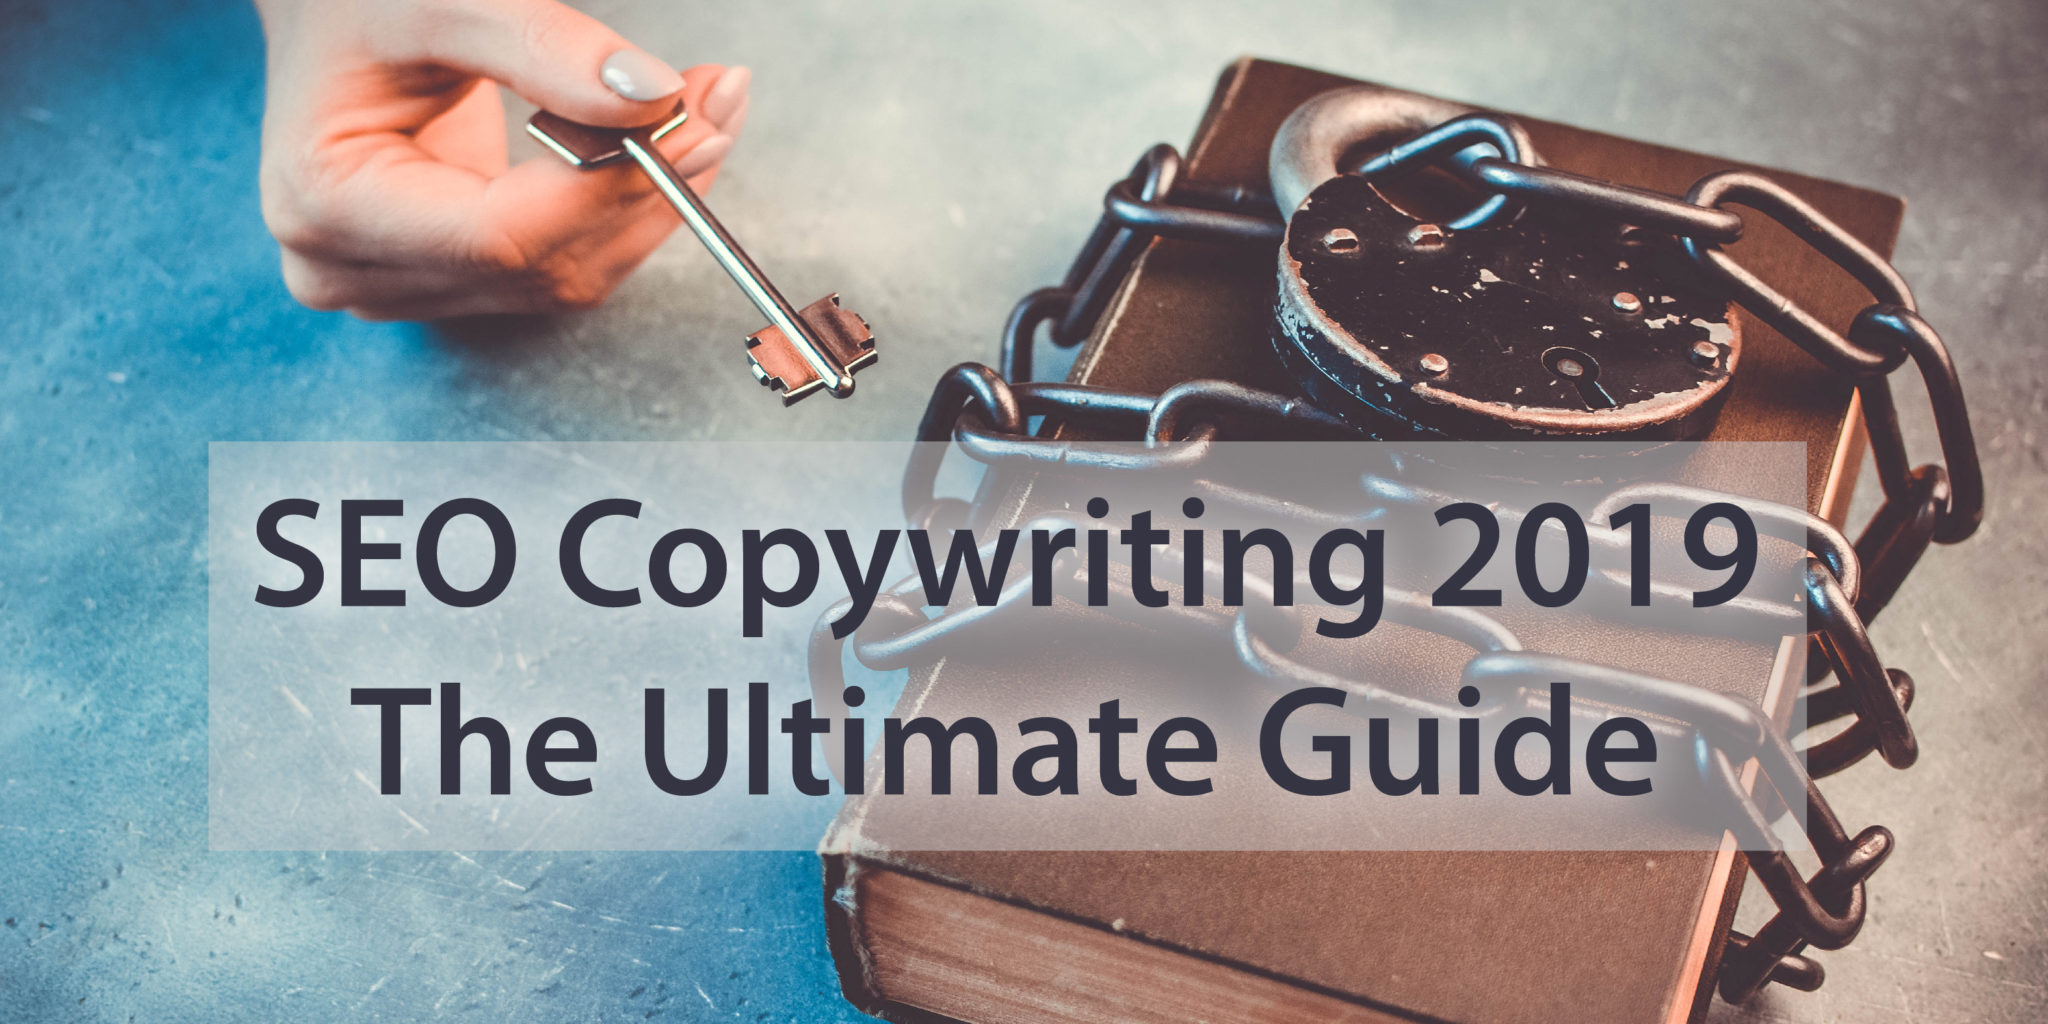 SEO Copywriting, The Ultimate Guide To Writing Websites That Rank And Convert